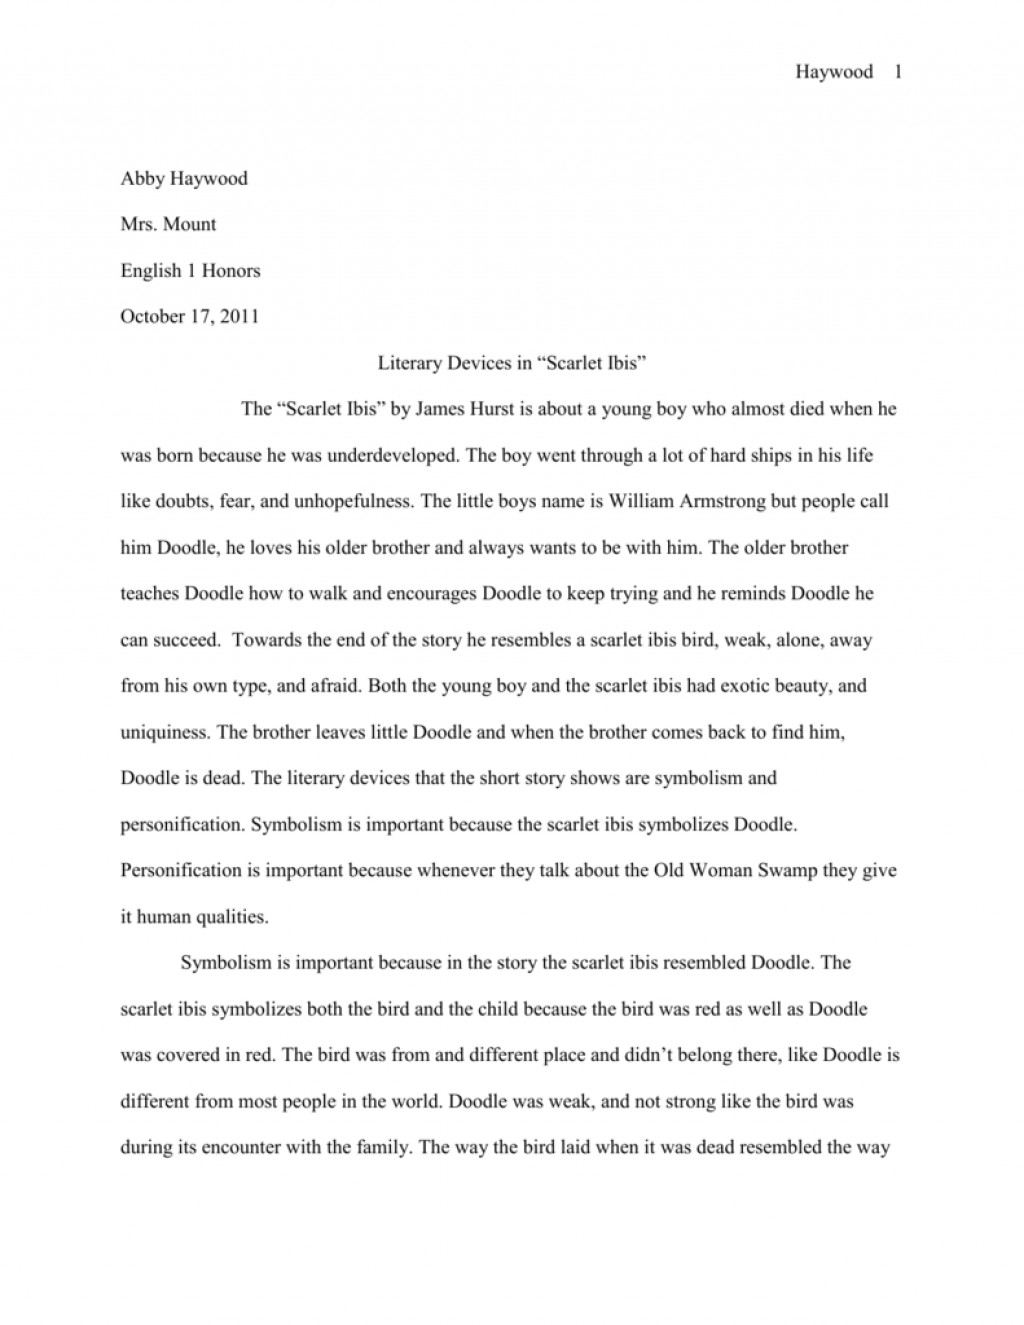 003 009067892 1 The Scarlet Ibis Essay Best Thesis Questions Discussion Large